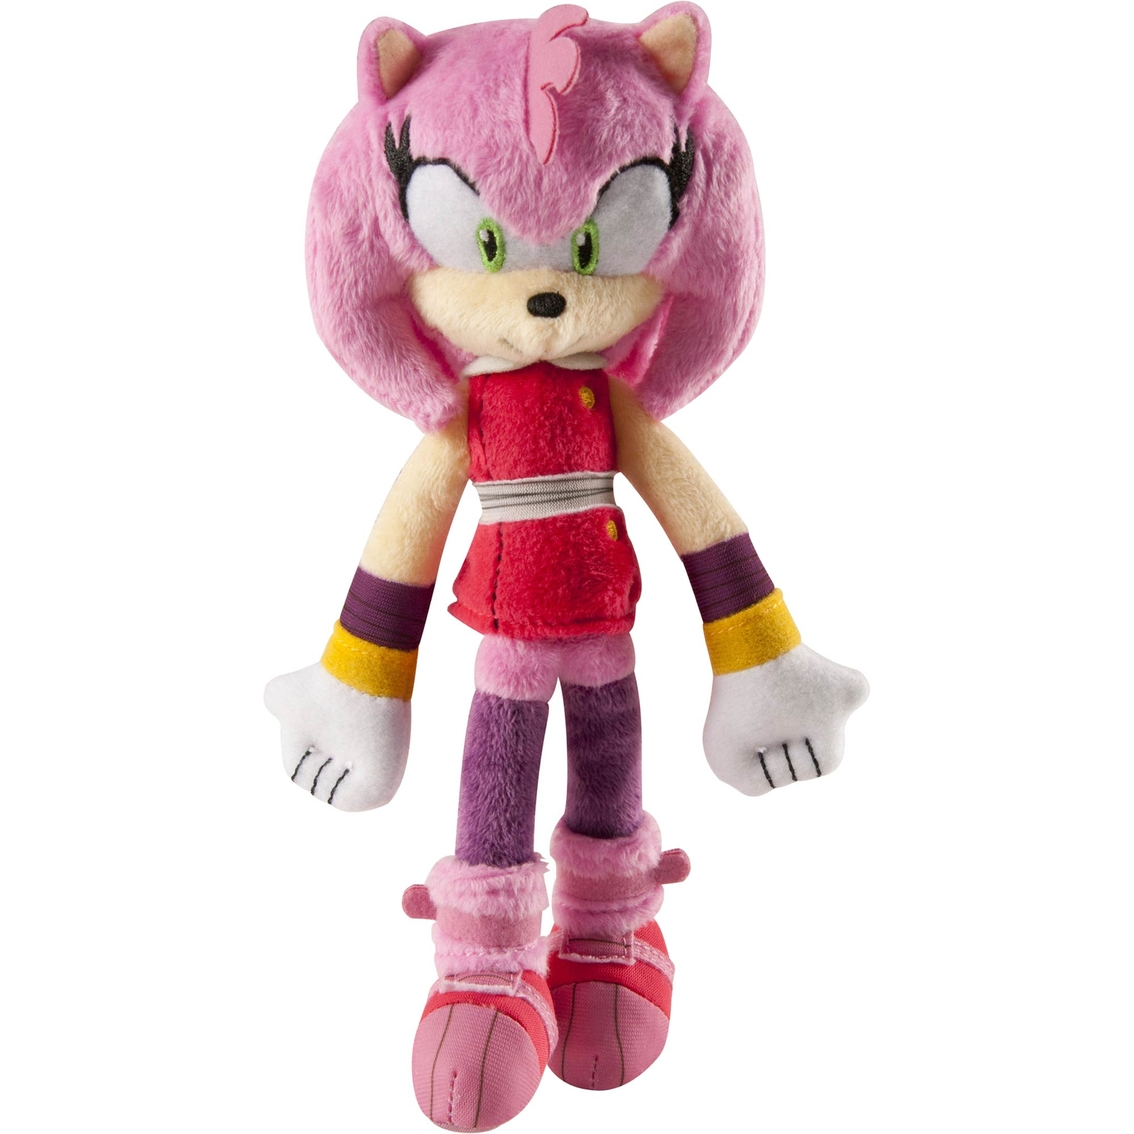 Sonic The Hedgehog 8 In Plush Amy Action Figures Baby Toys Shop The Exchange